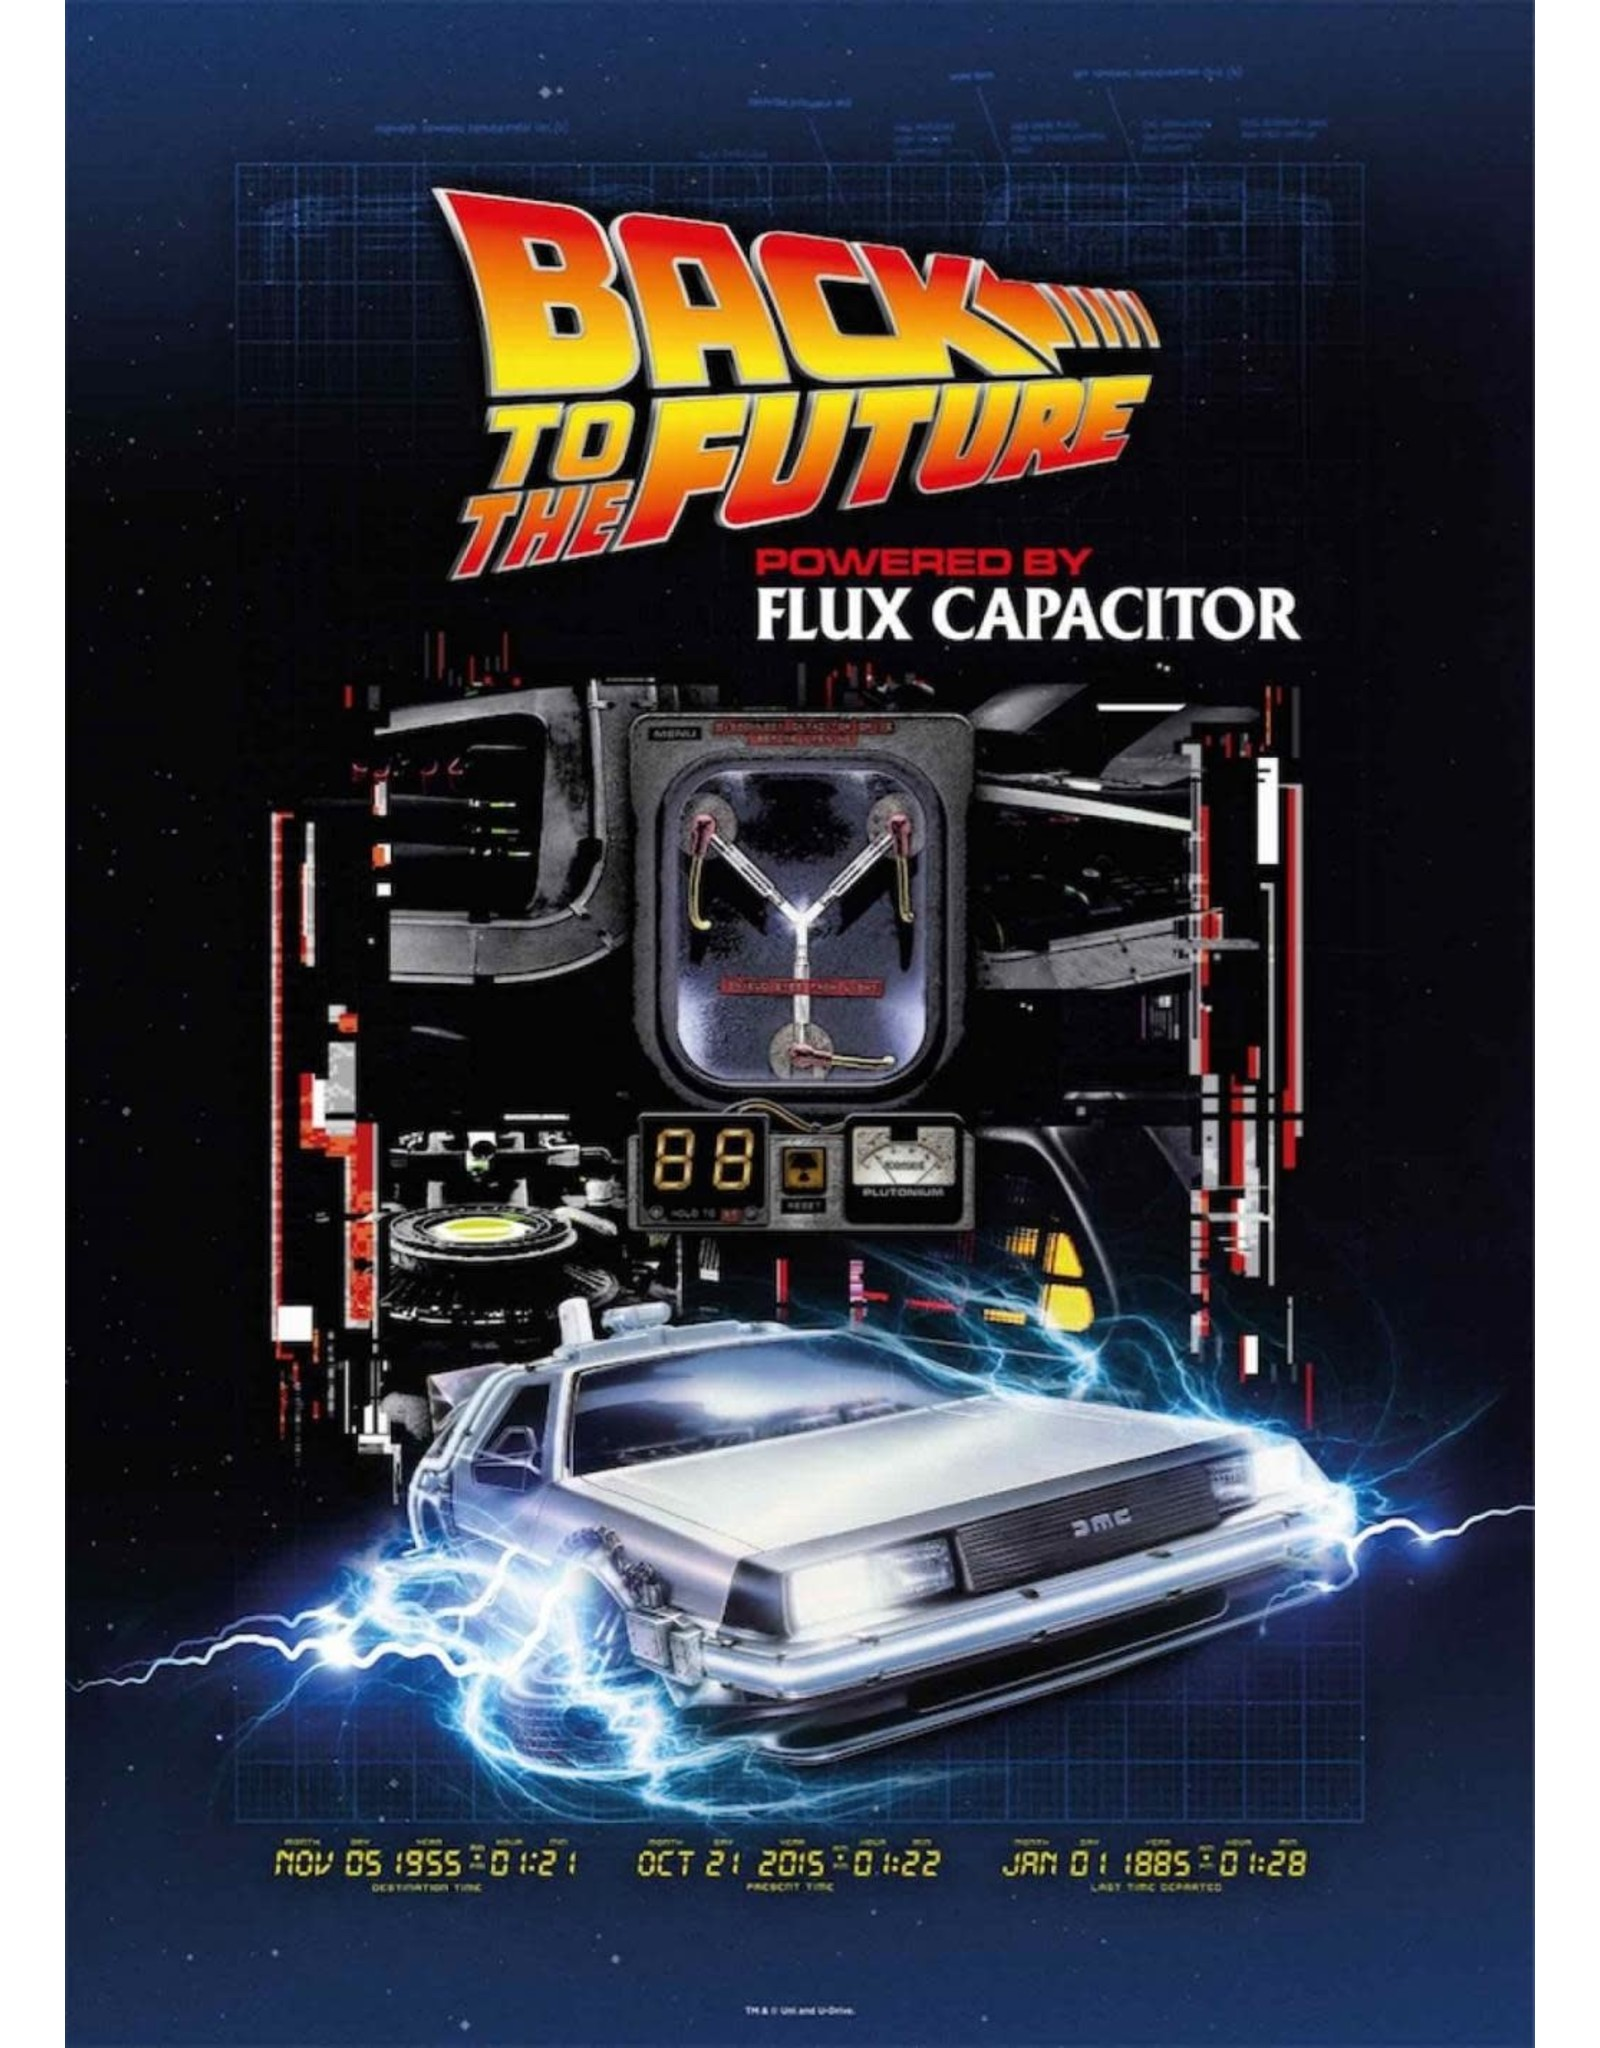 SD Toys BACK TO THE FUTURE Puzzle 1000P - Flux Capacitor